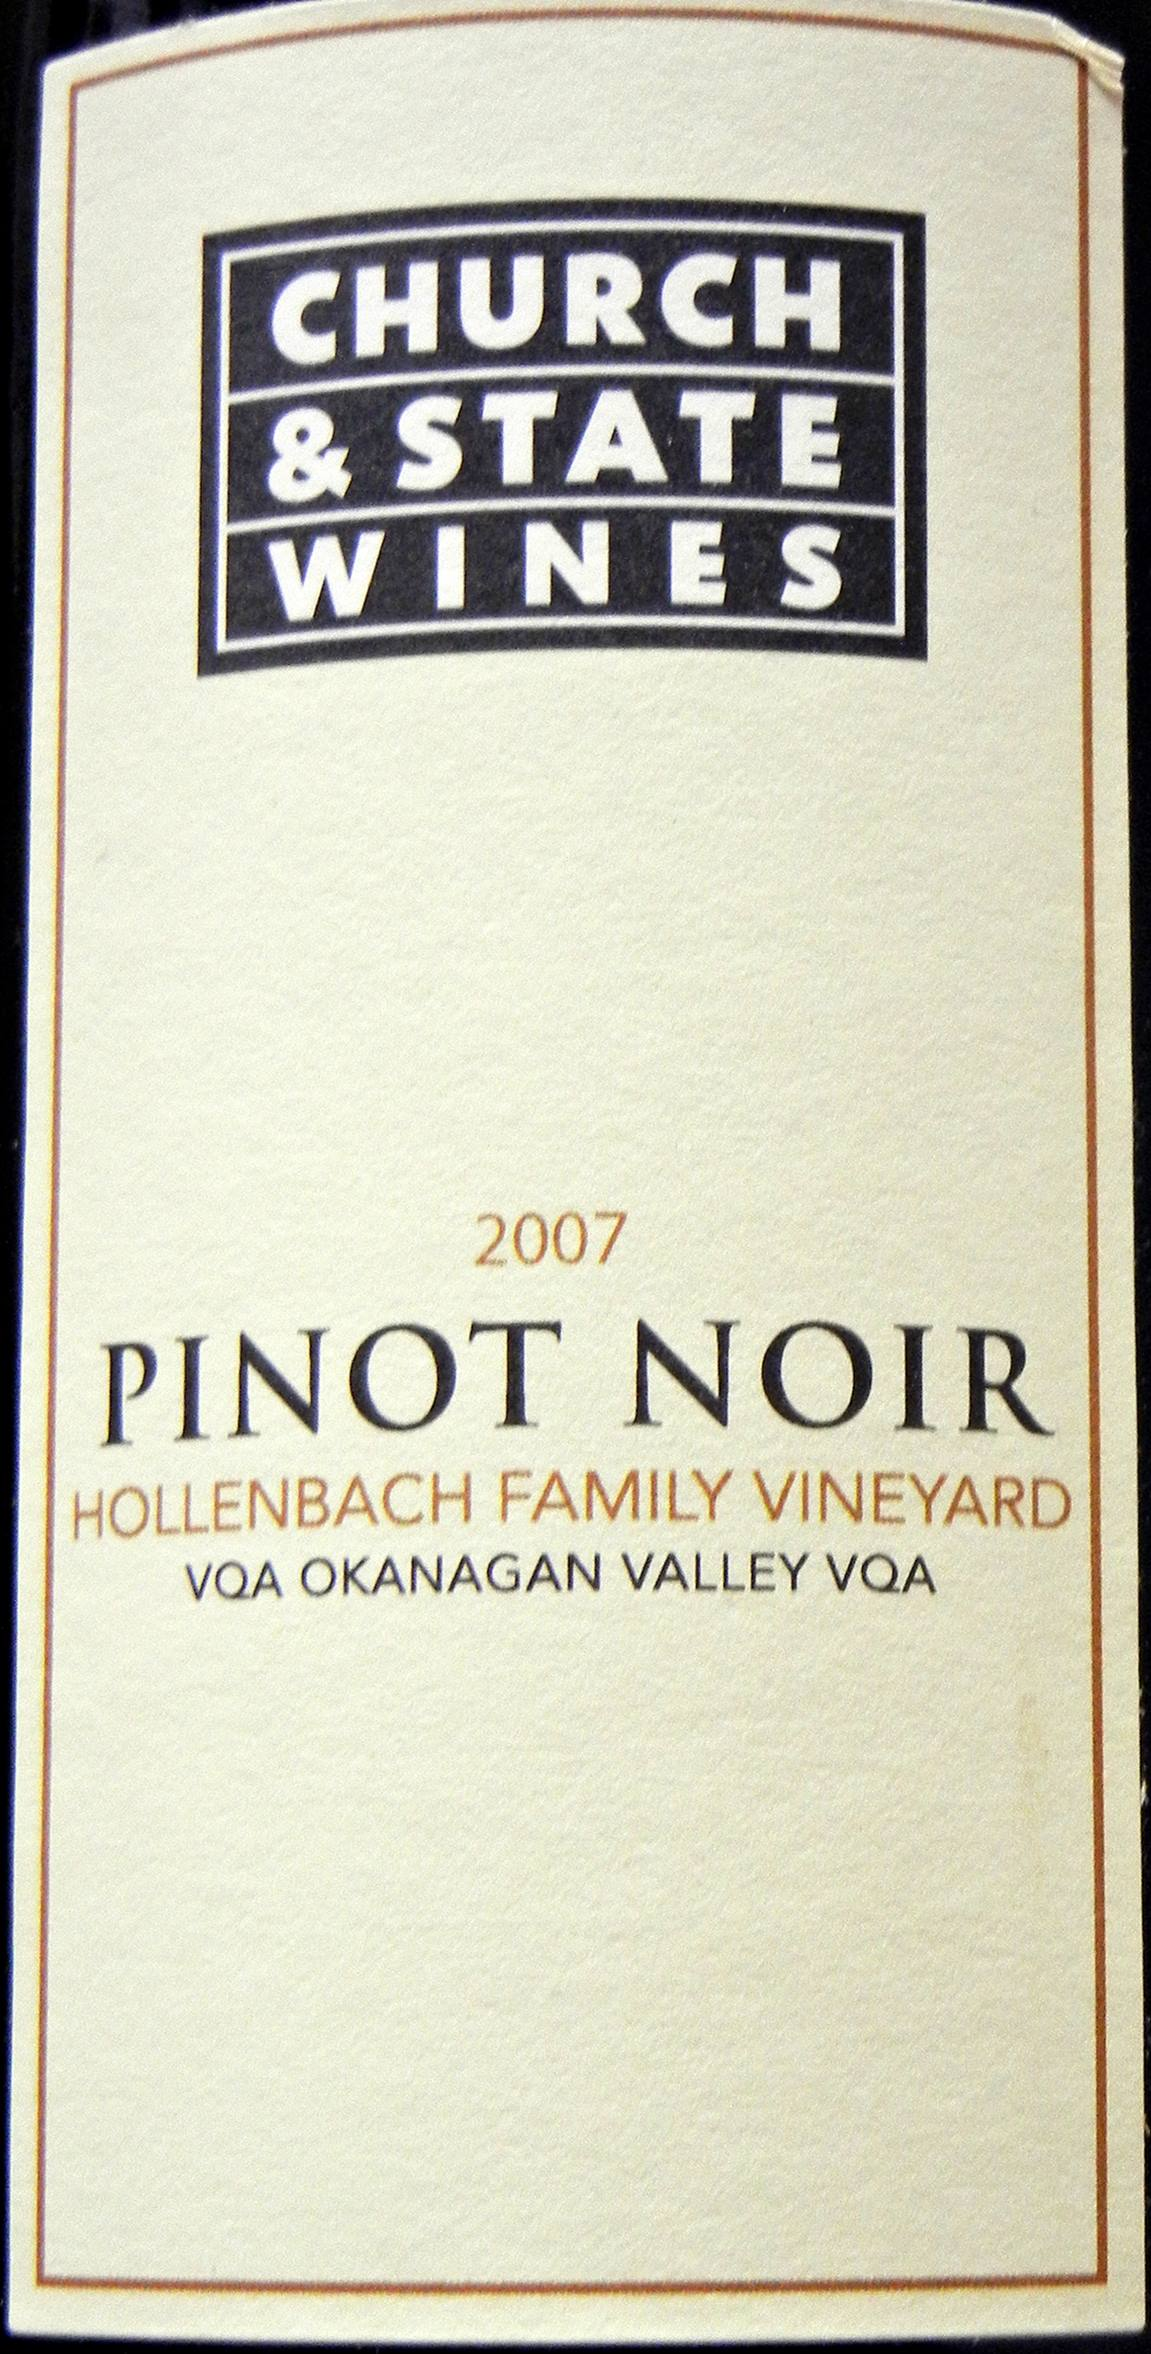 Church & State Hollenbach Pinot Noir 2007 Label - BC Pinot Noir Tasting Review 2